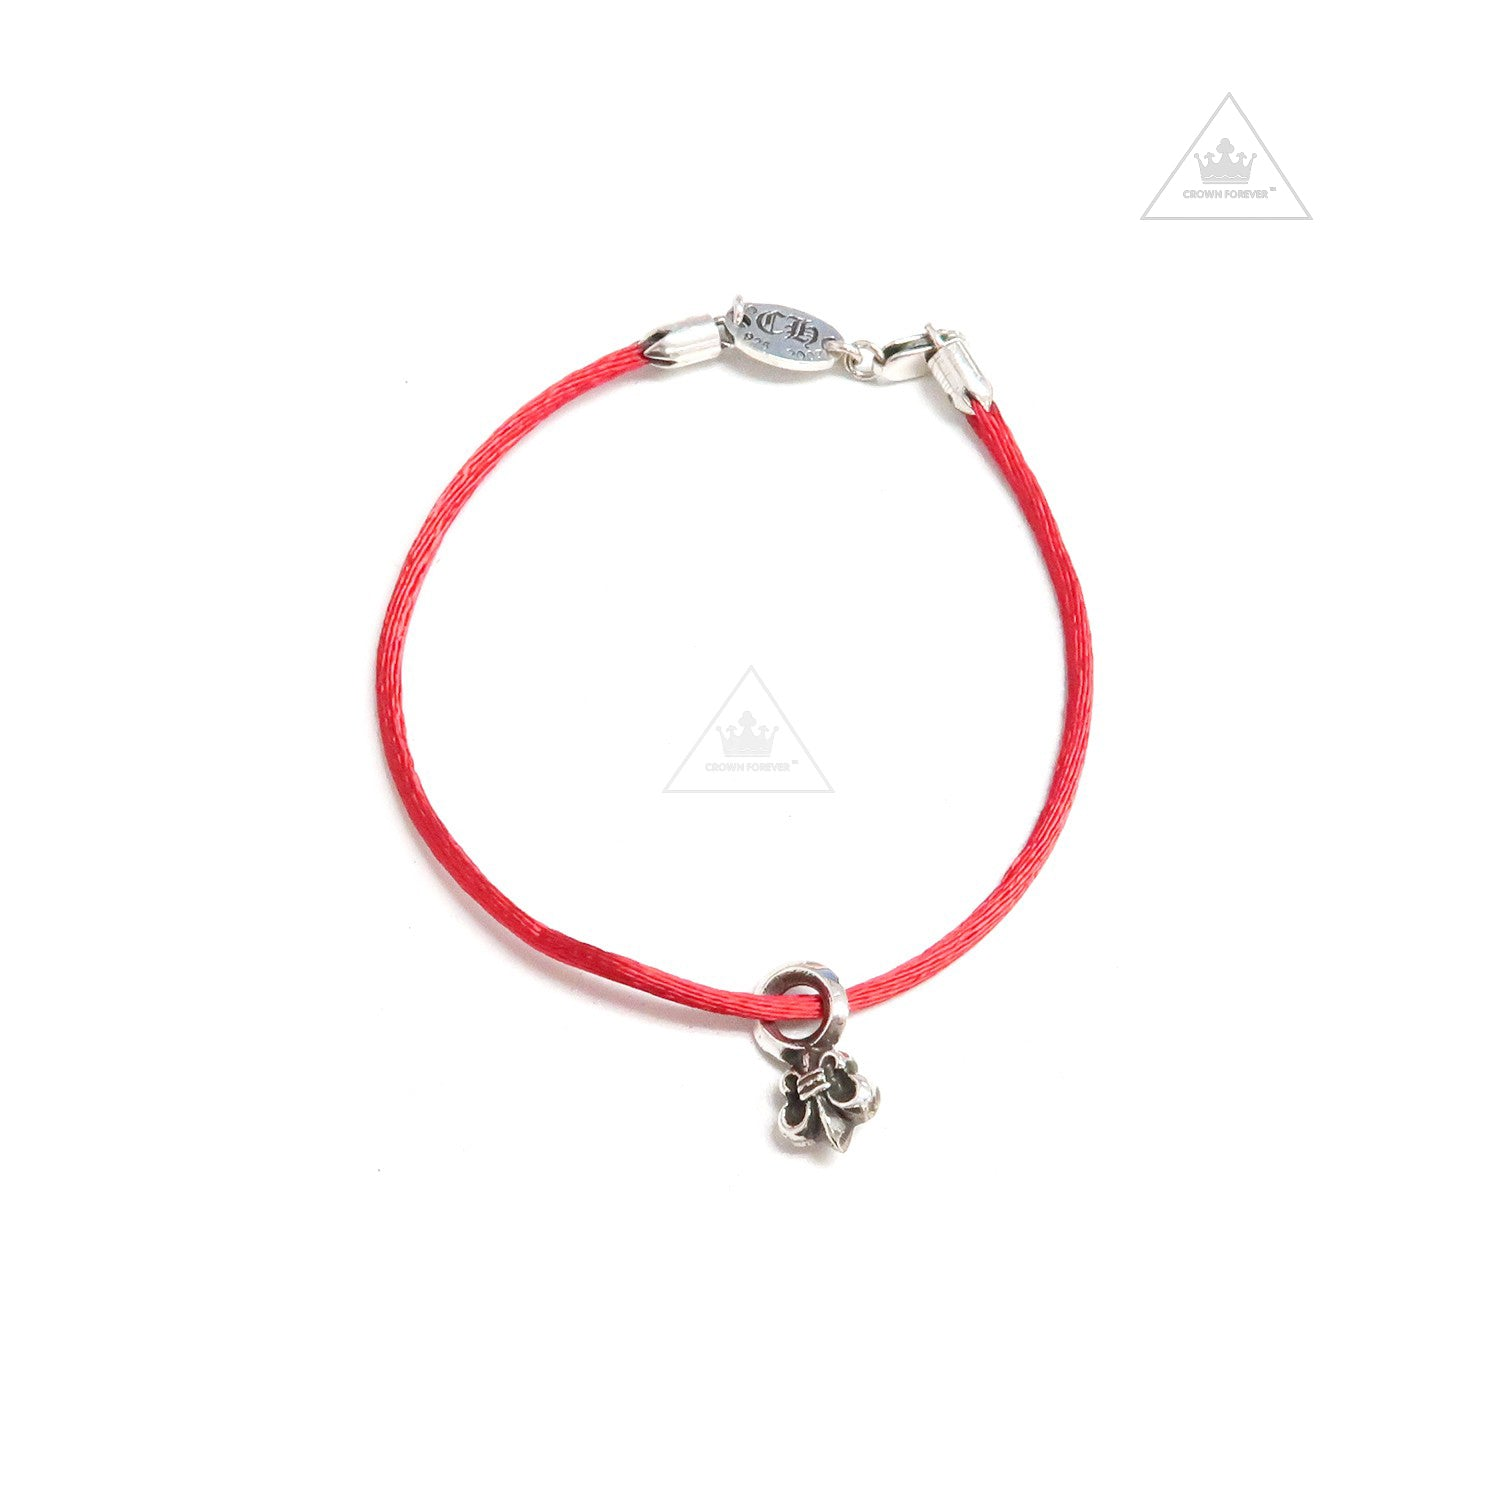 9c0a9e81a9ac Chrome hearts Classic Cross Bracelet Bangle – Crown Forever